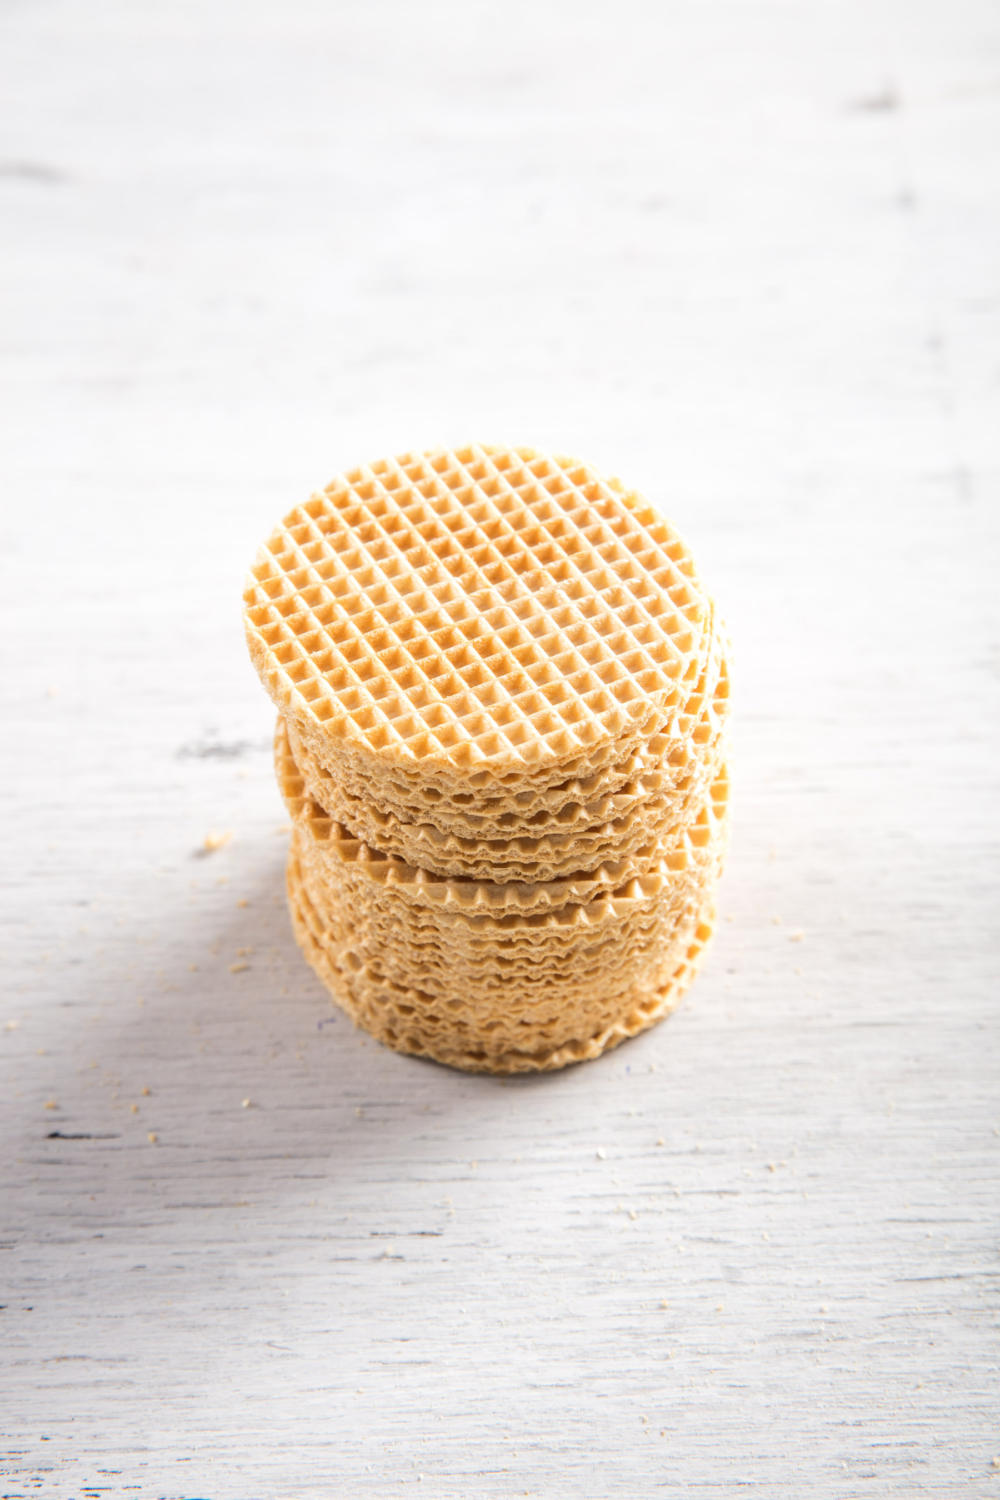 Ice cream wafers